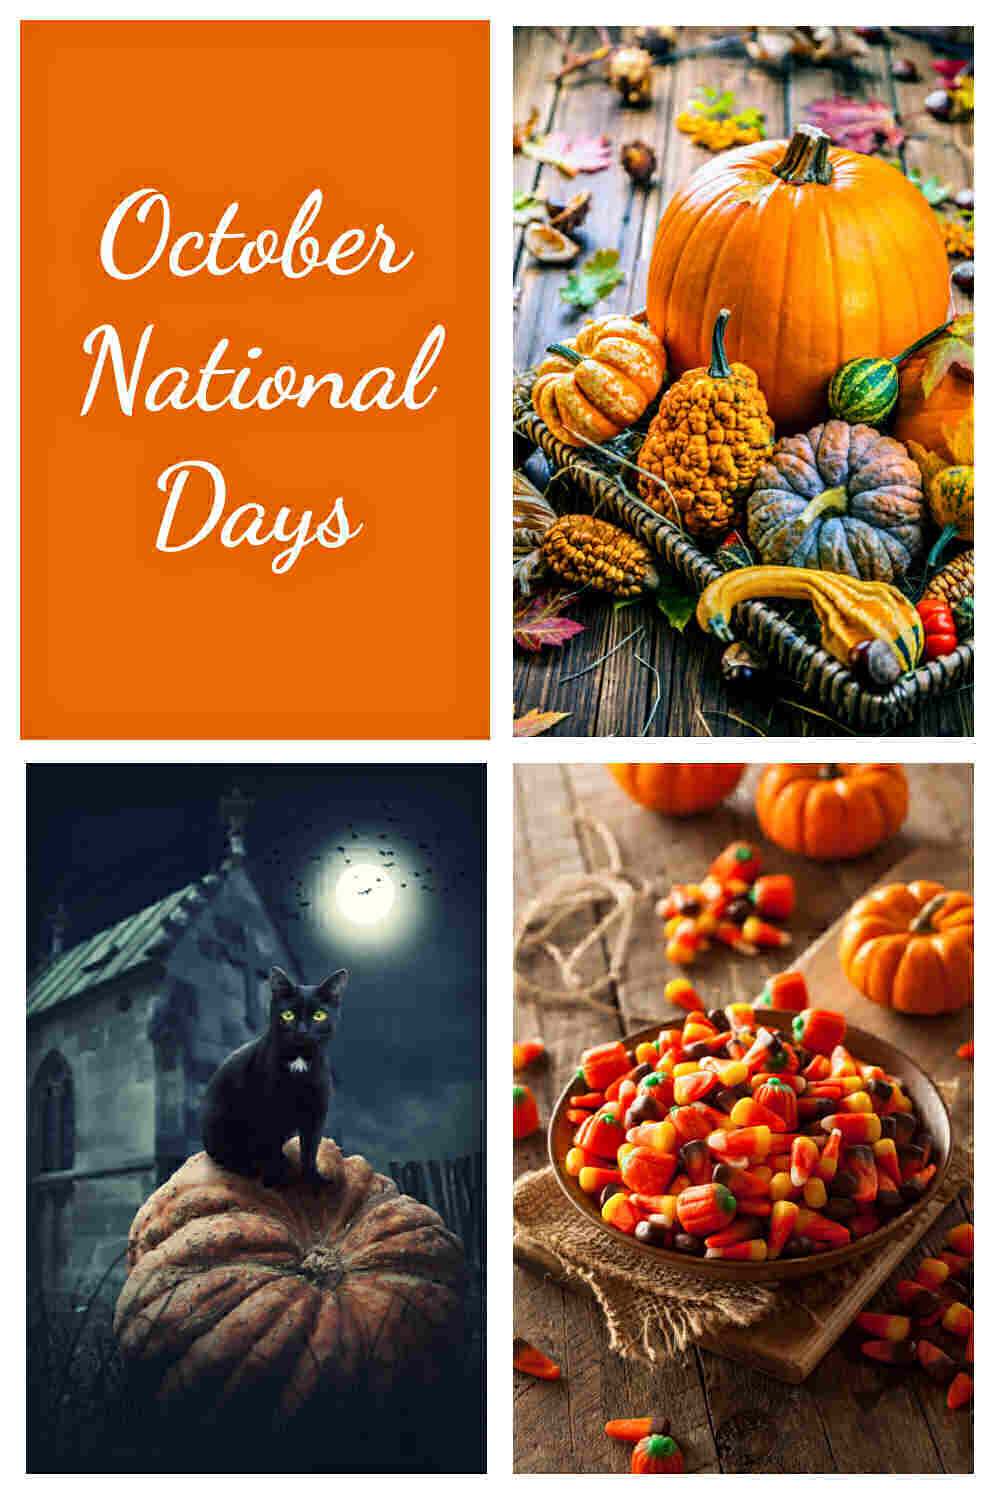 Pumpkins, Black cats and candy corn with words reading October National Days.